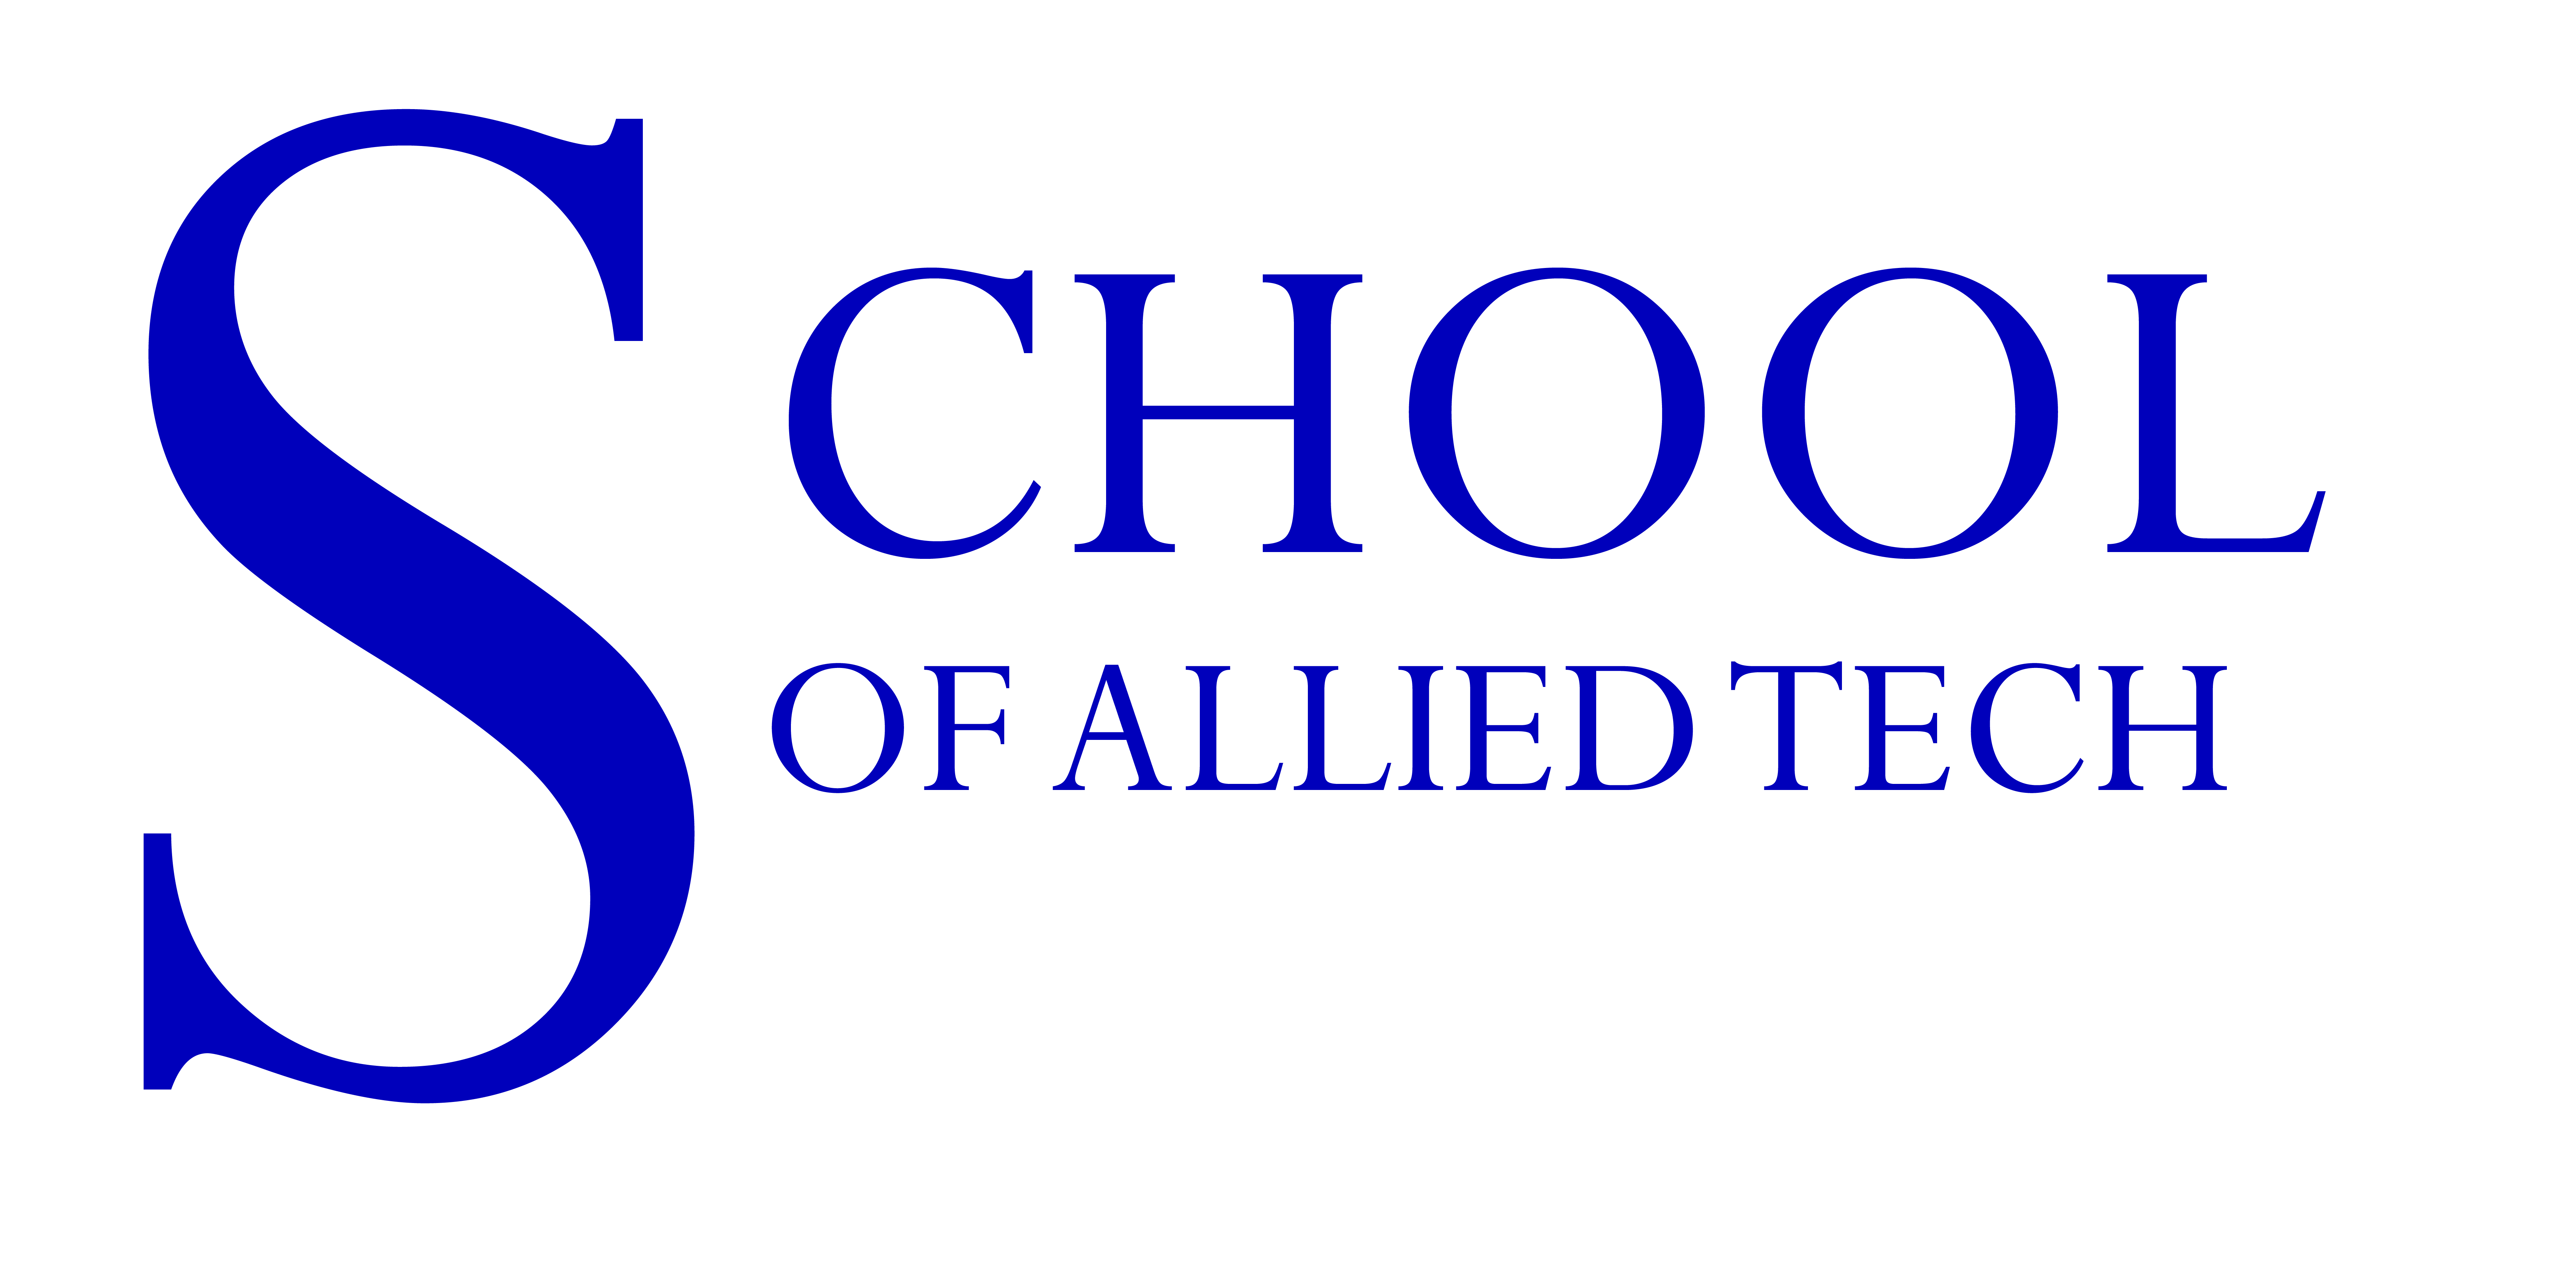 School of Allied Tech